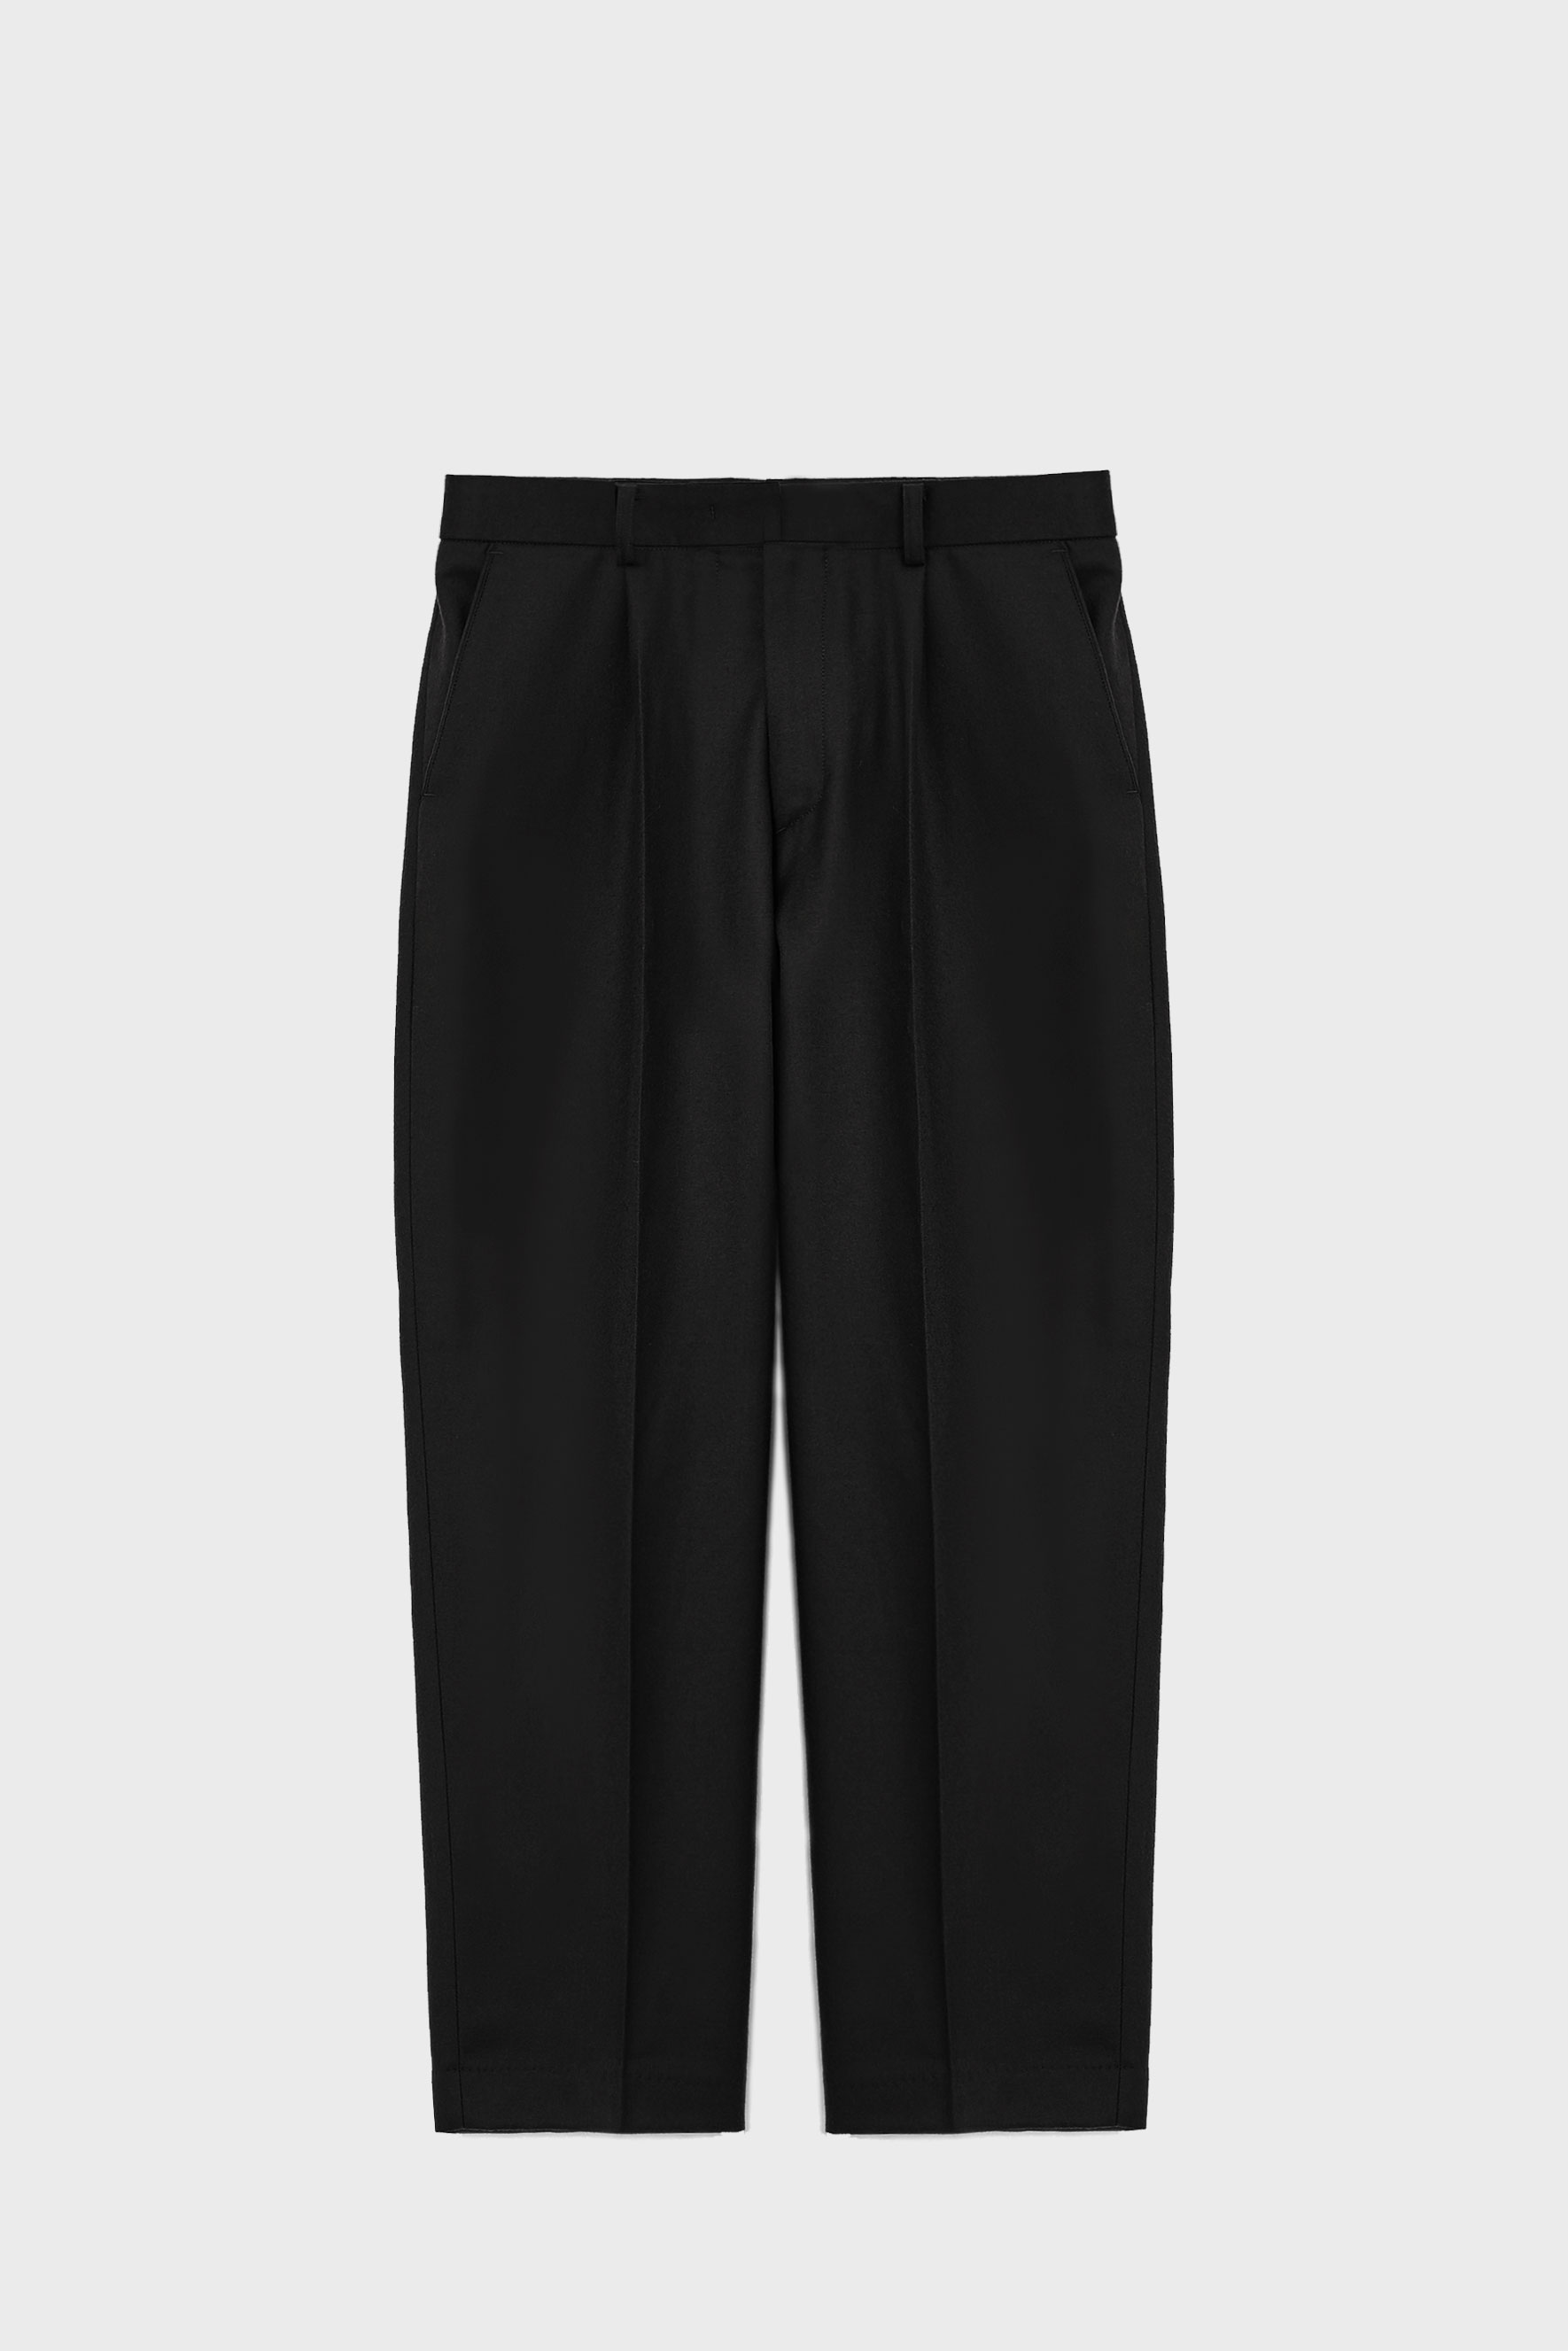 NOAH Merino Wool One Tuck Pants_Black